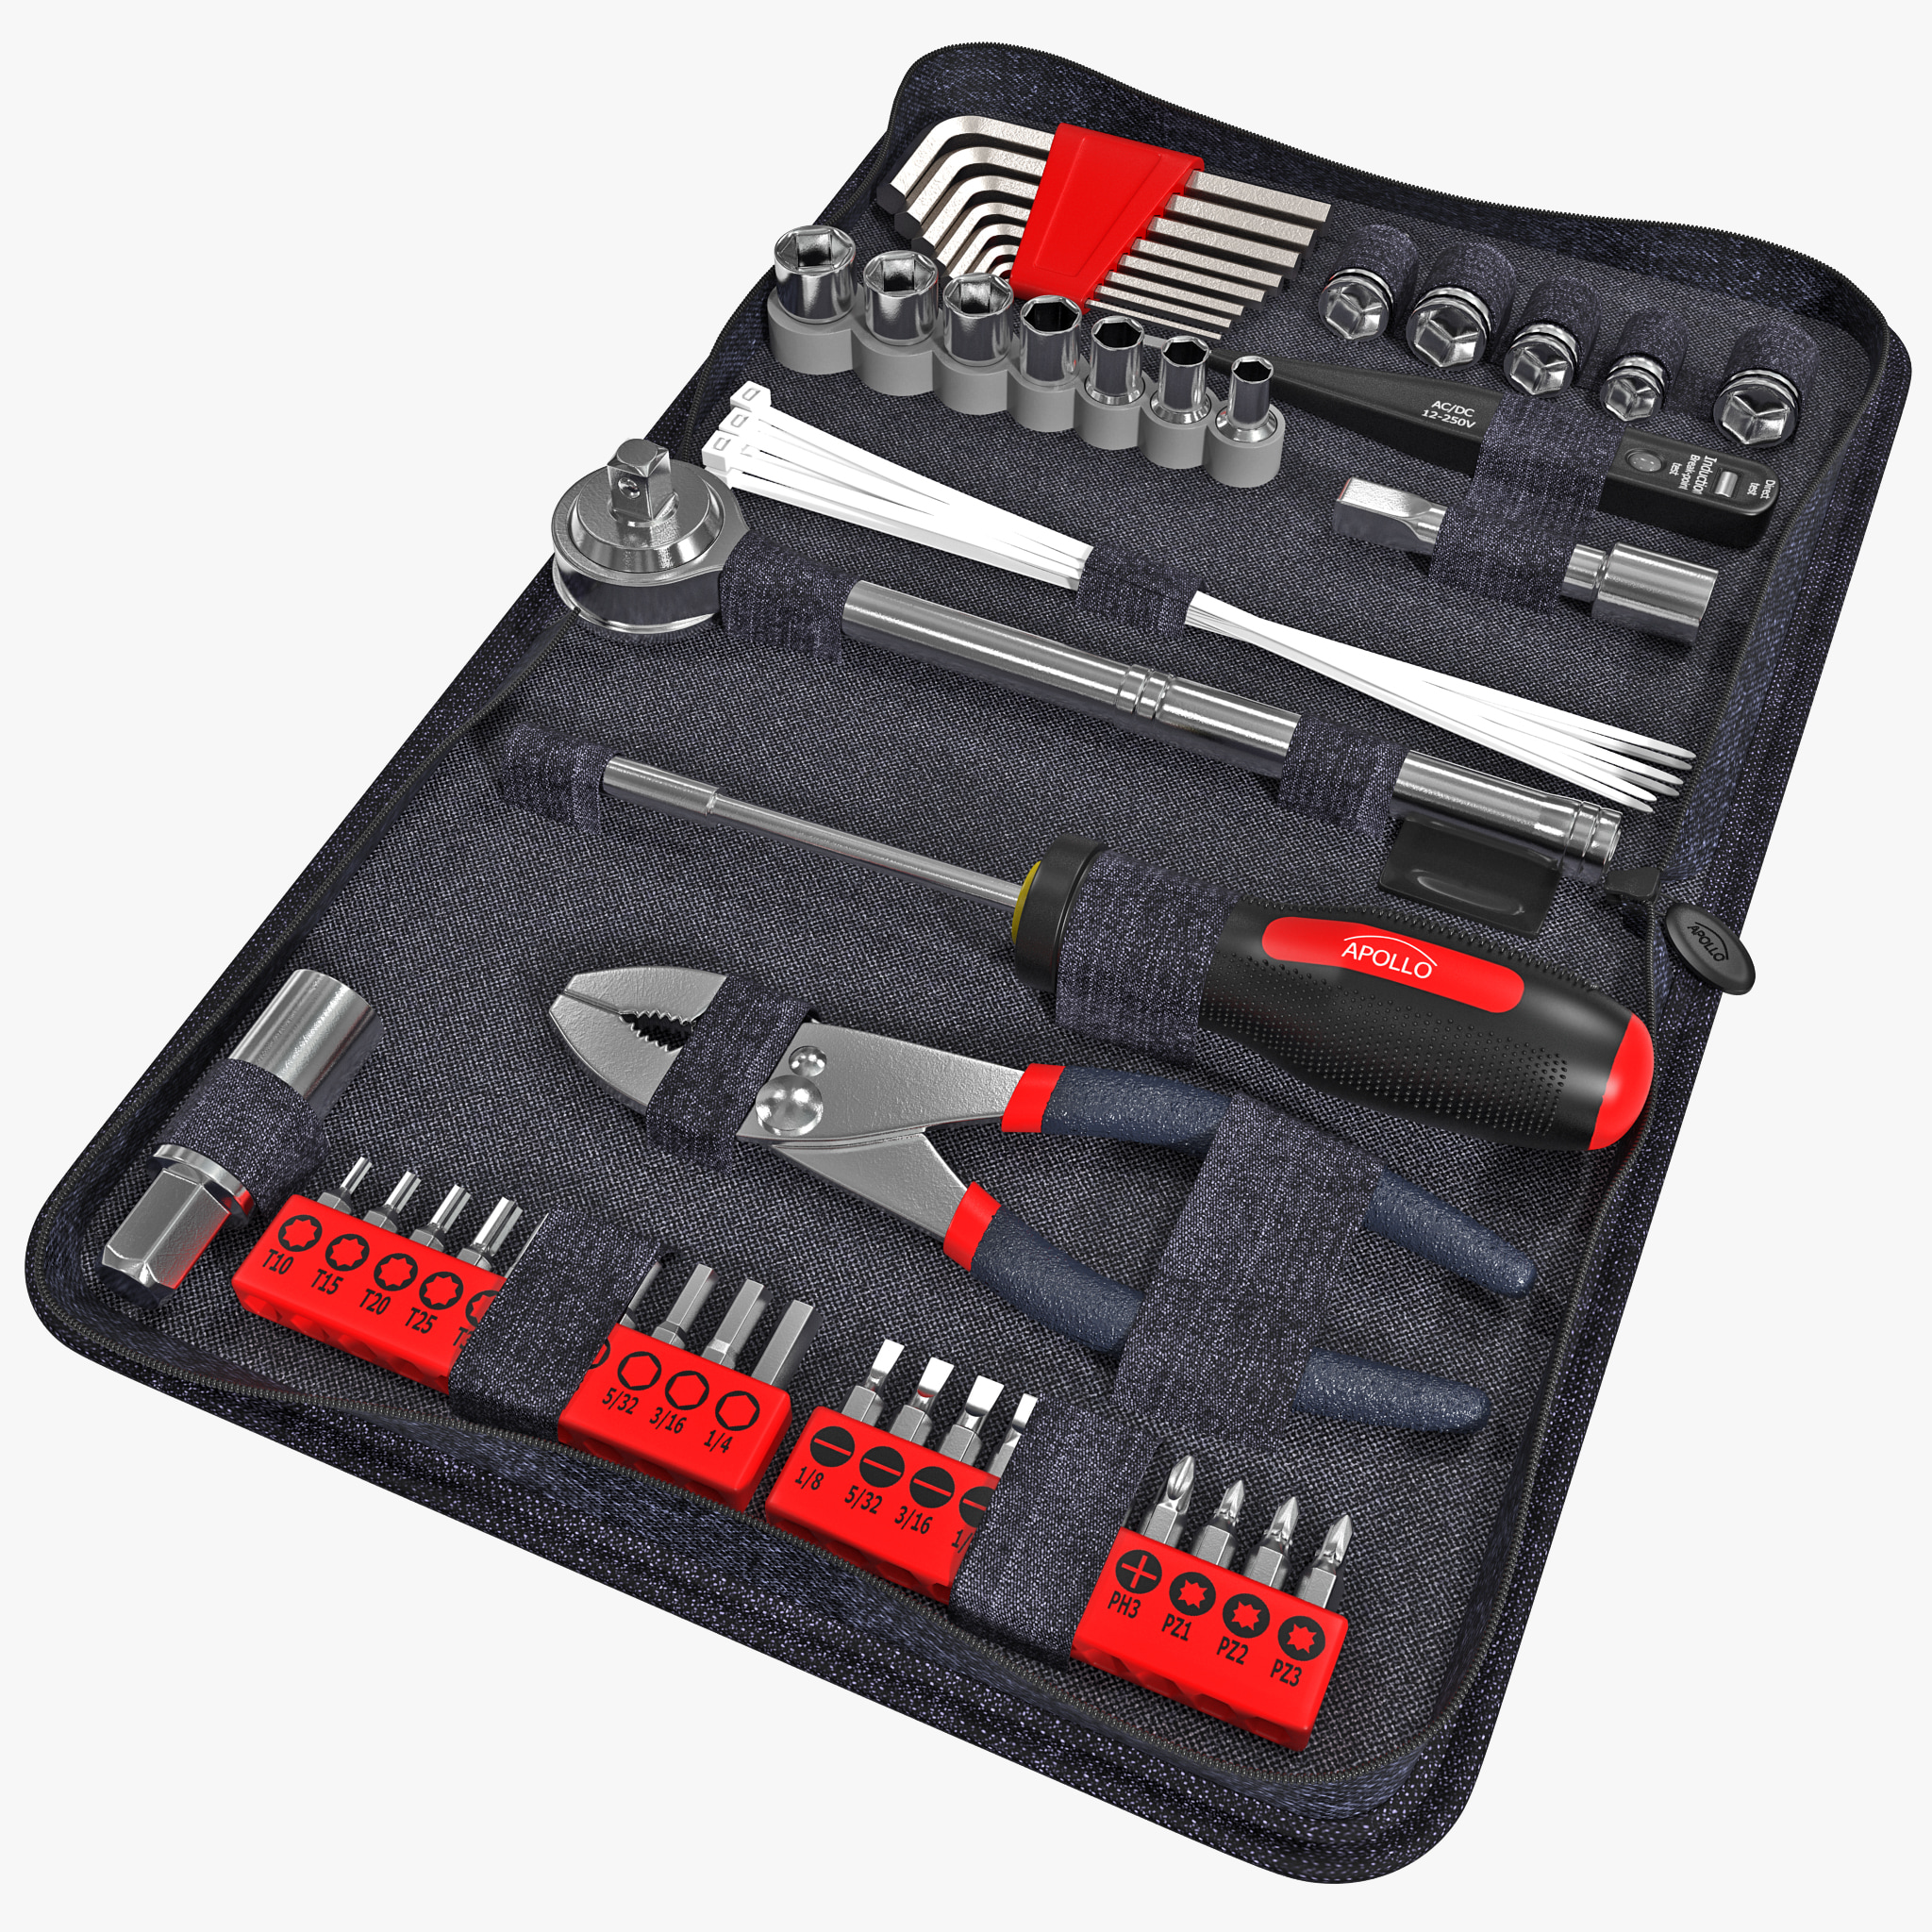 c4d automotive tool kit